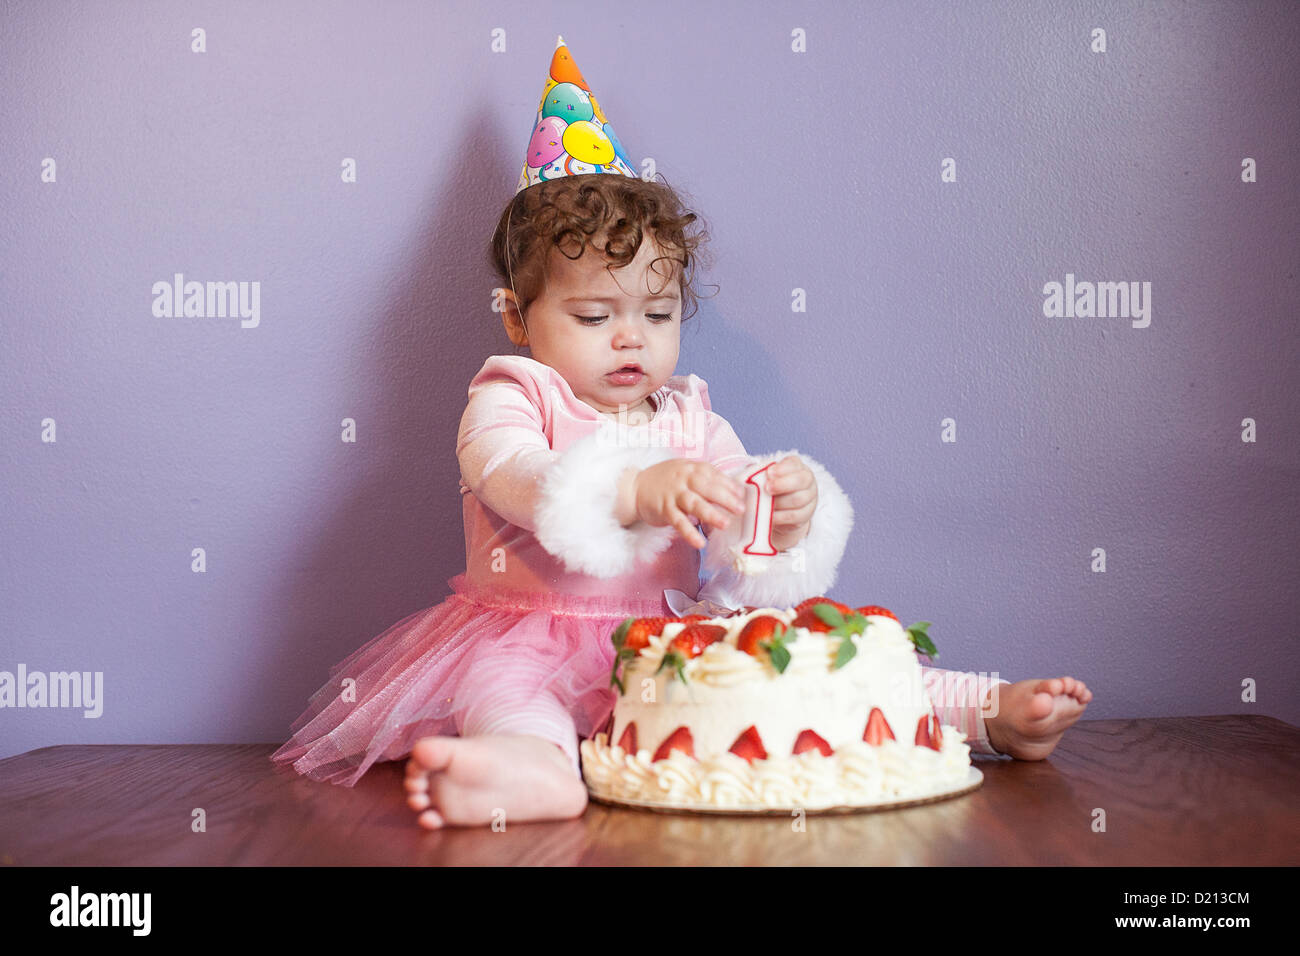 cute baby girl wearing a party hat, eating and playing with a stock